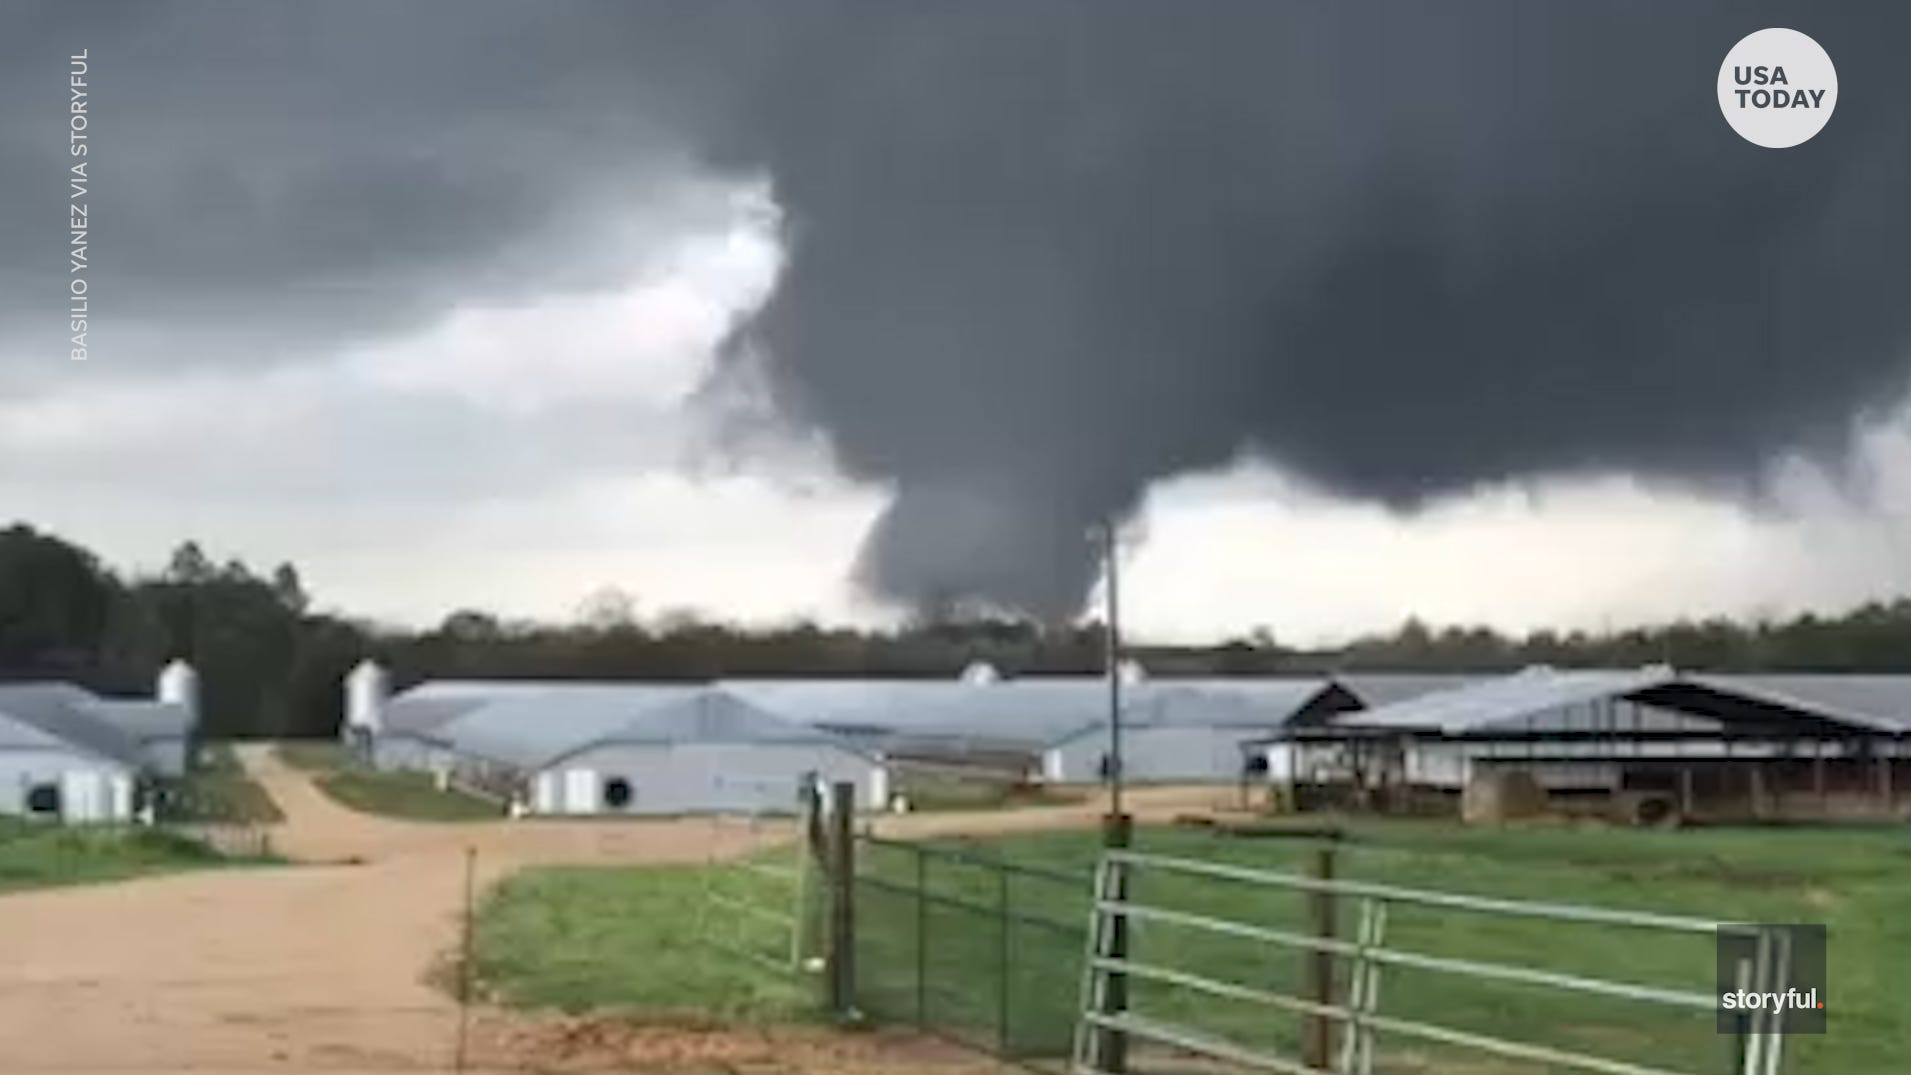 Severe Storms Tornadoes Forecast For South On Thursday